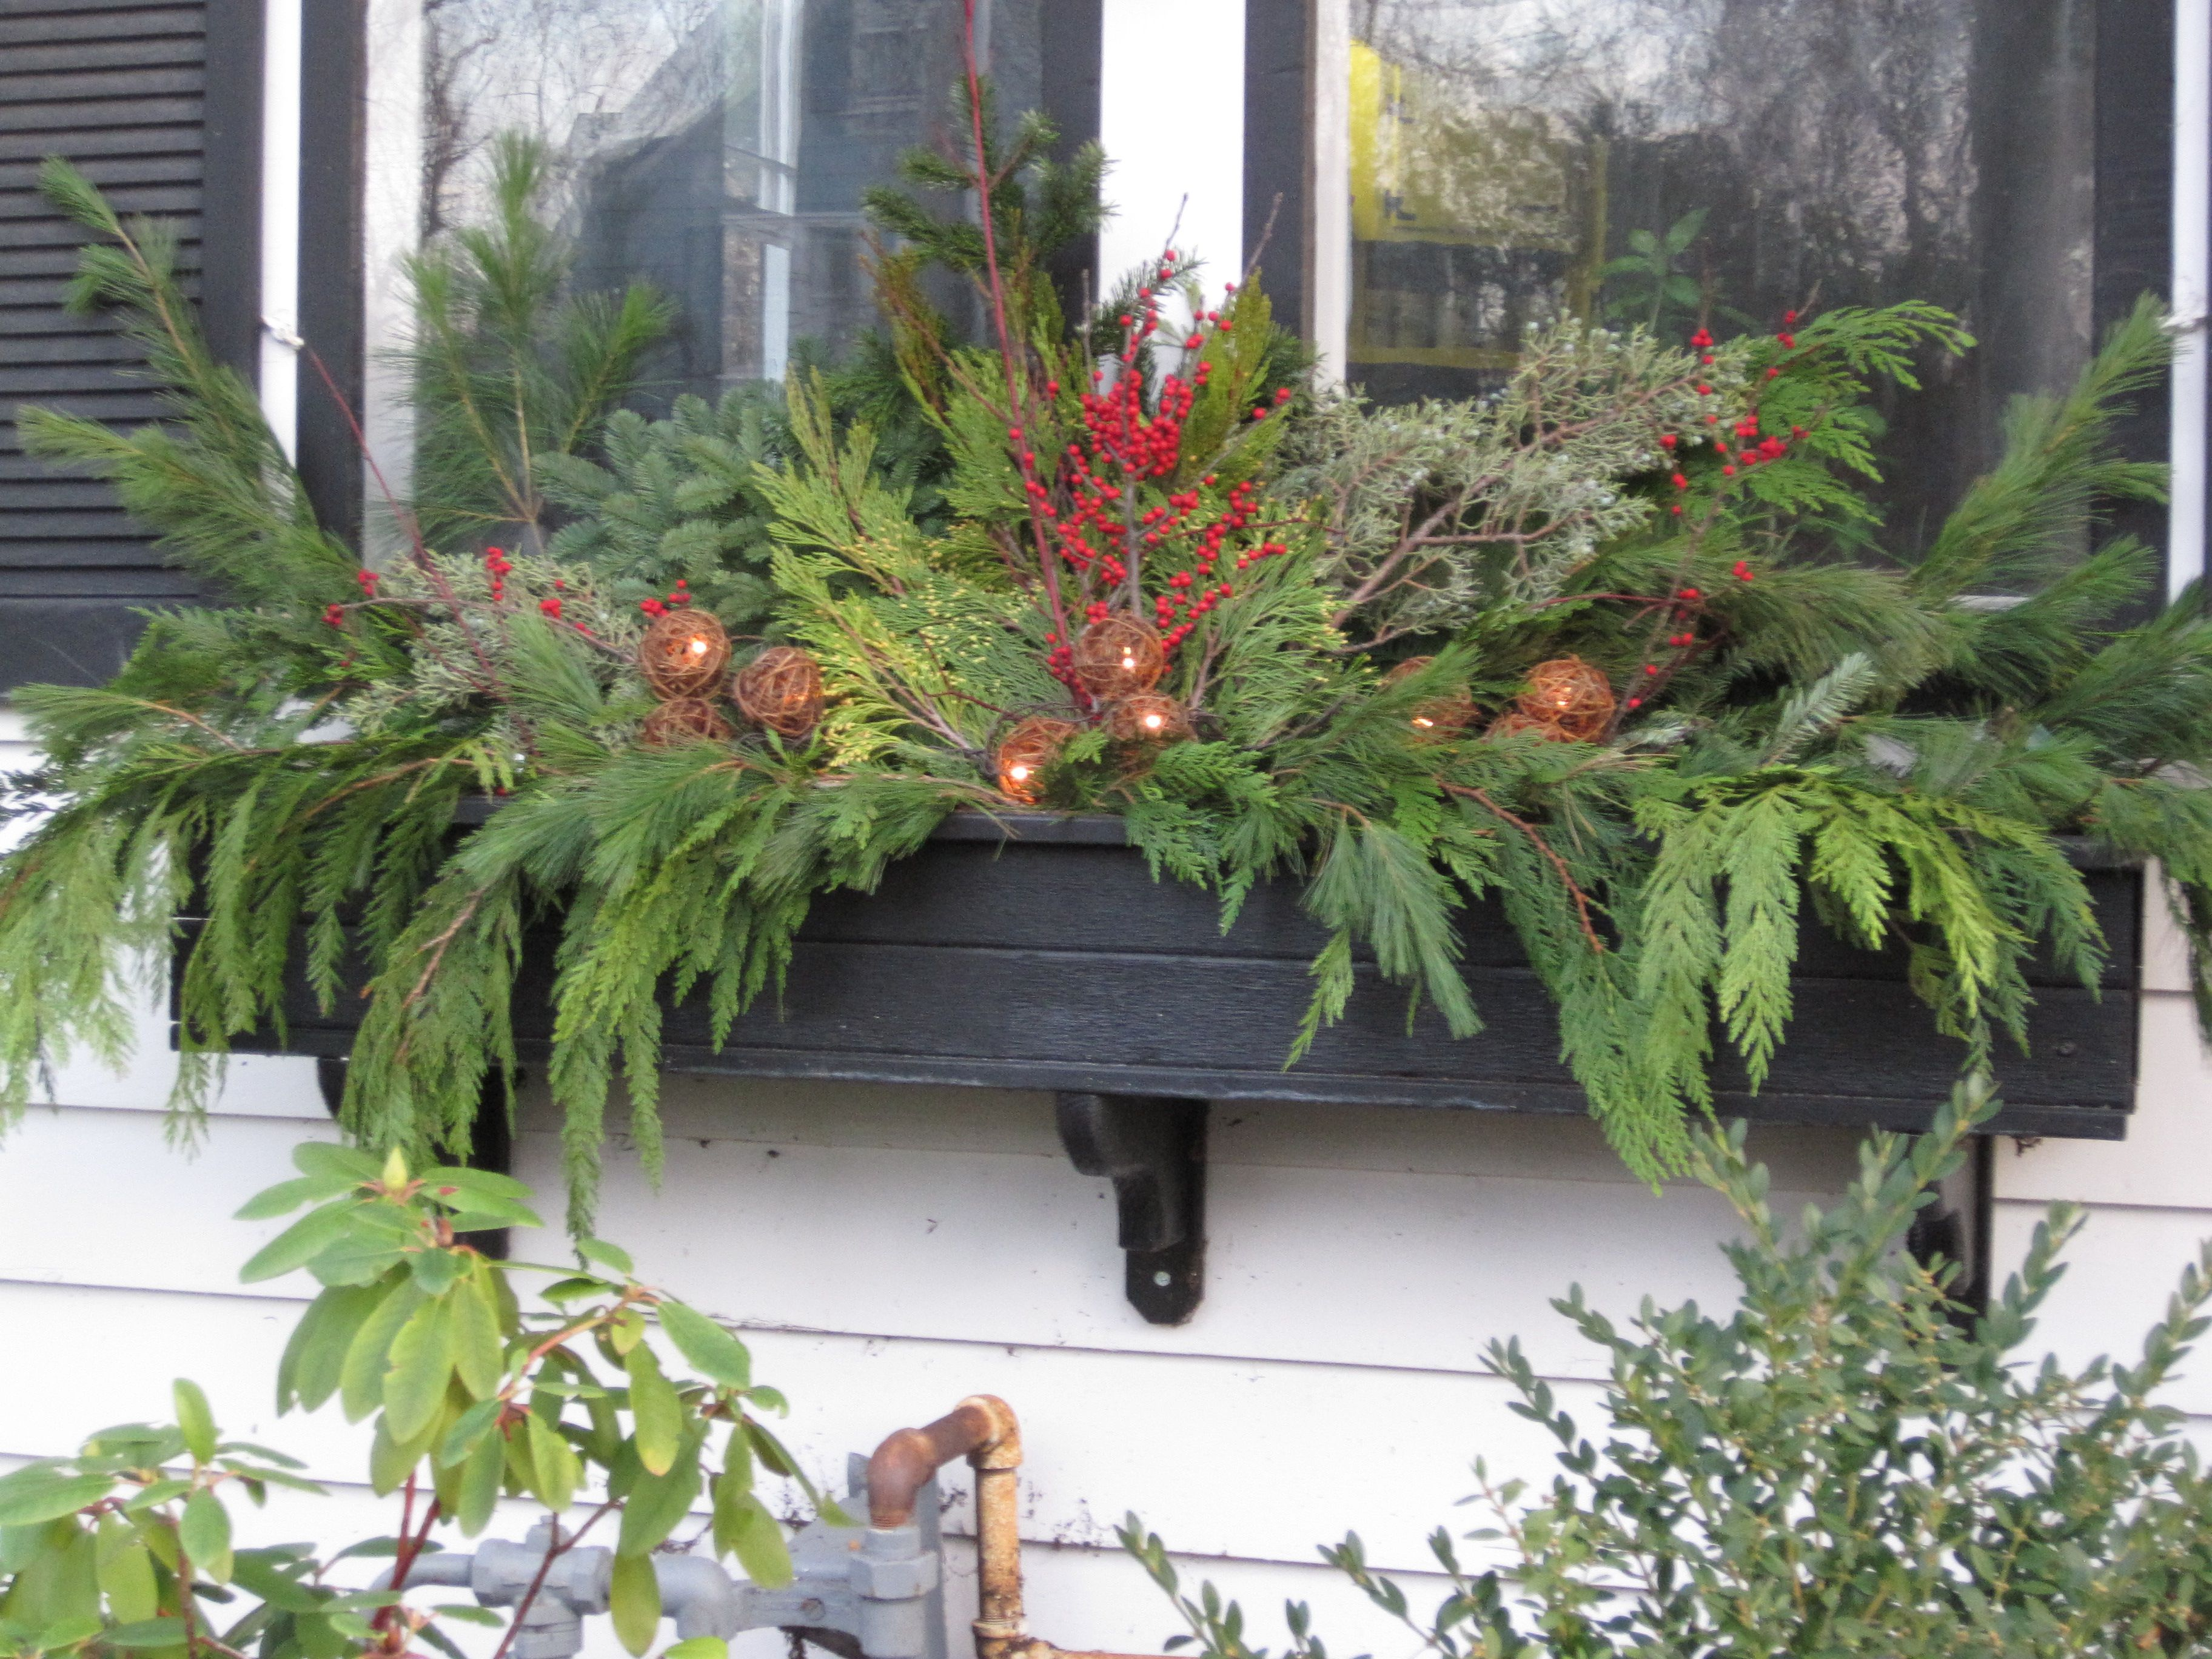 Winter Flower Boxes | ourimgs.com - The Hippest Galleries! | garden ...